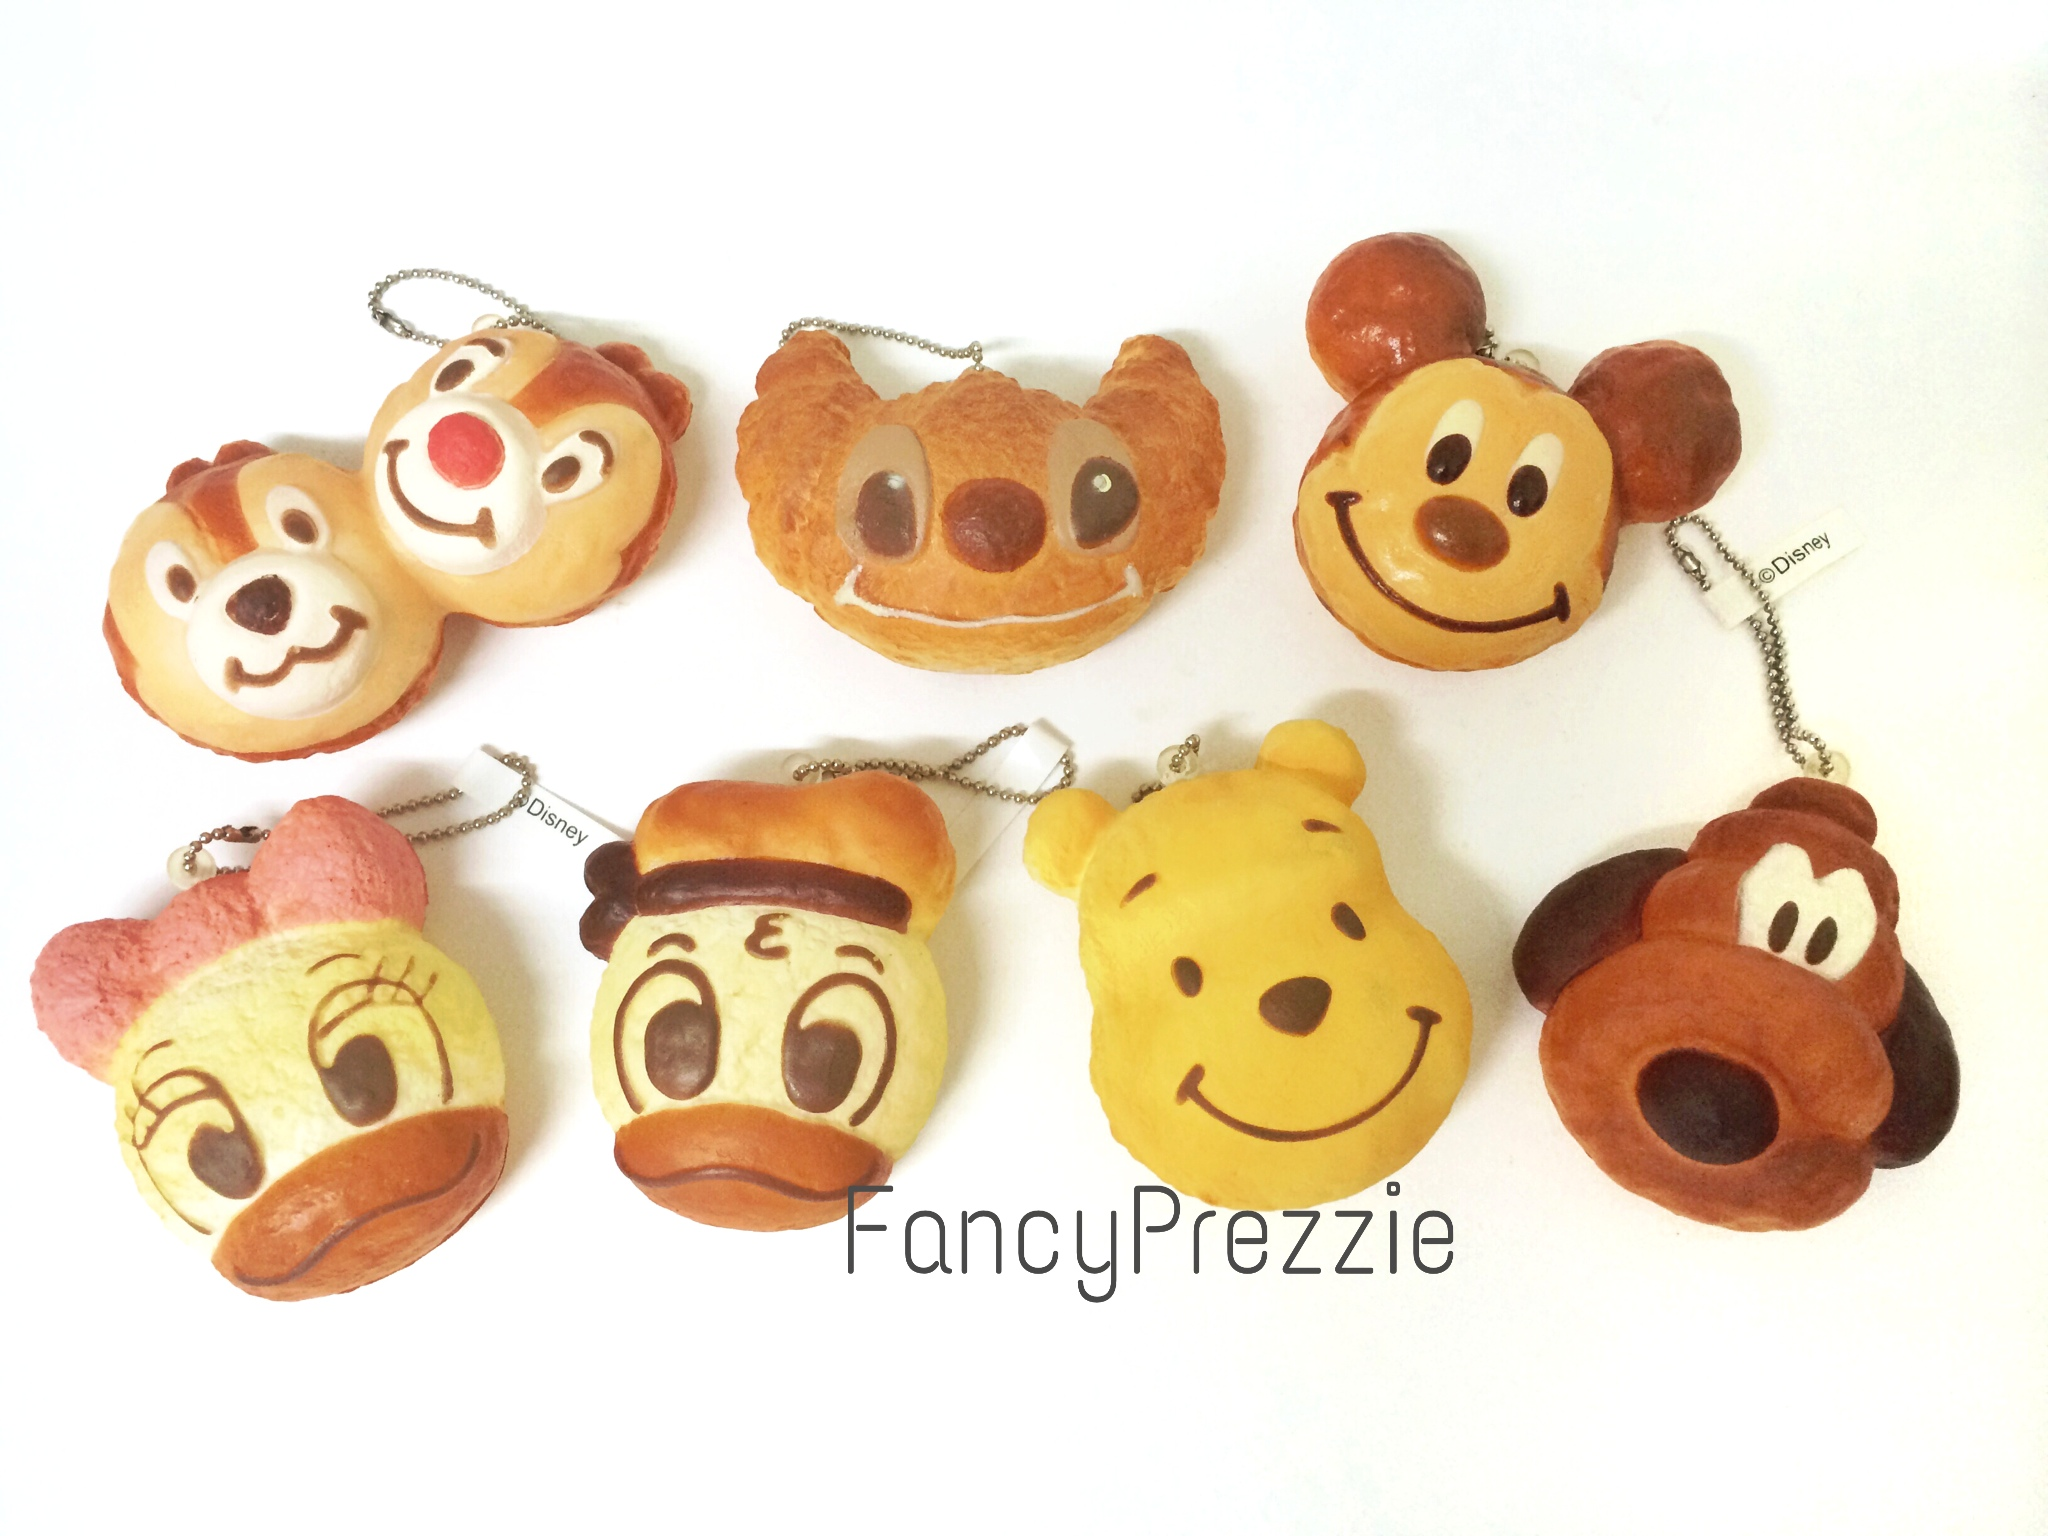 Cracking Squishy Collection : Disney Re-ment Squishy ? FancyPrezzie ? Online Store Powered by Storenvy